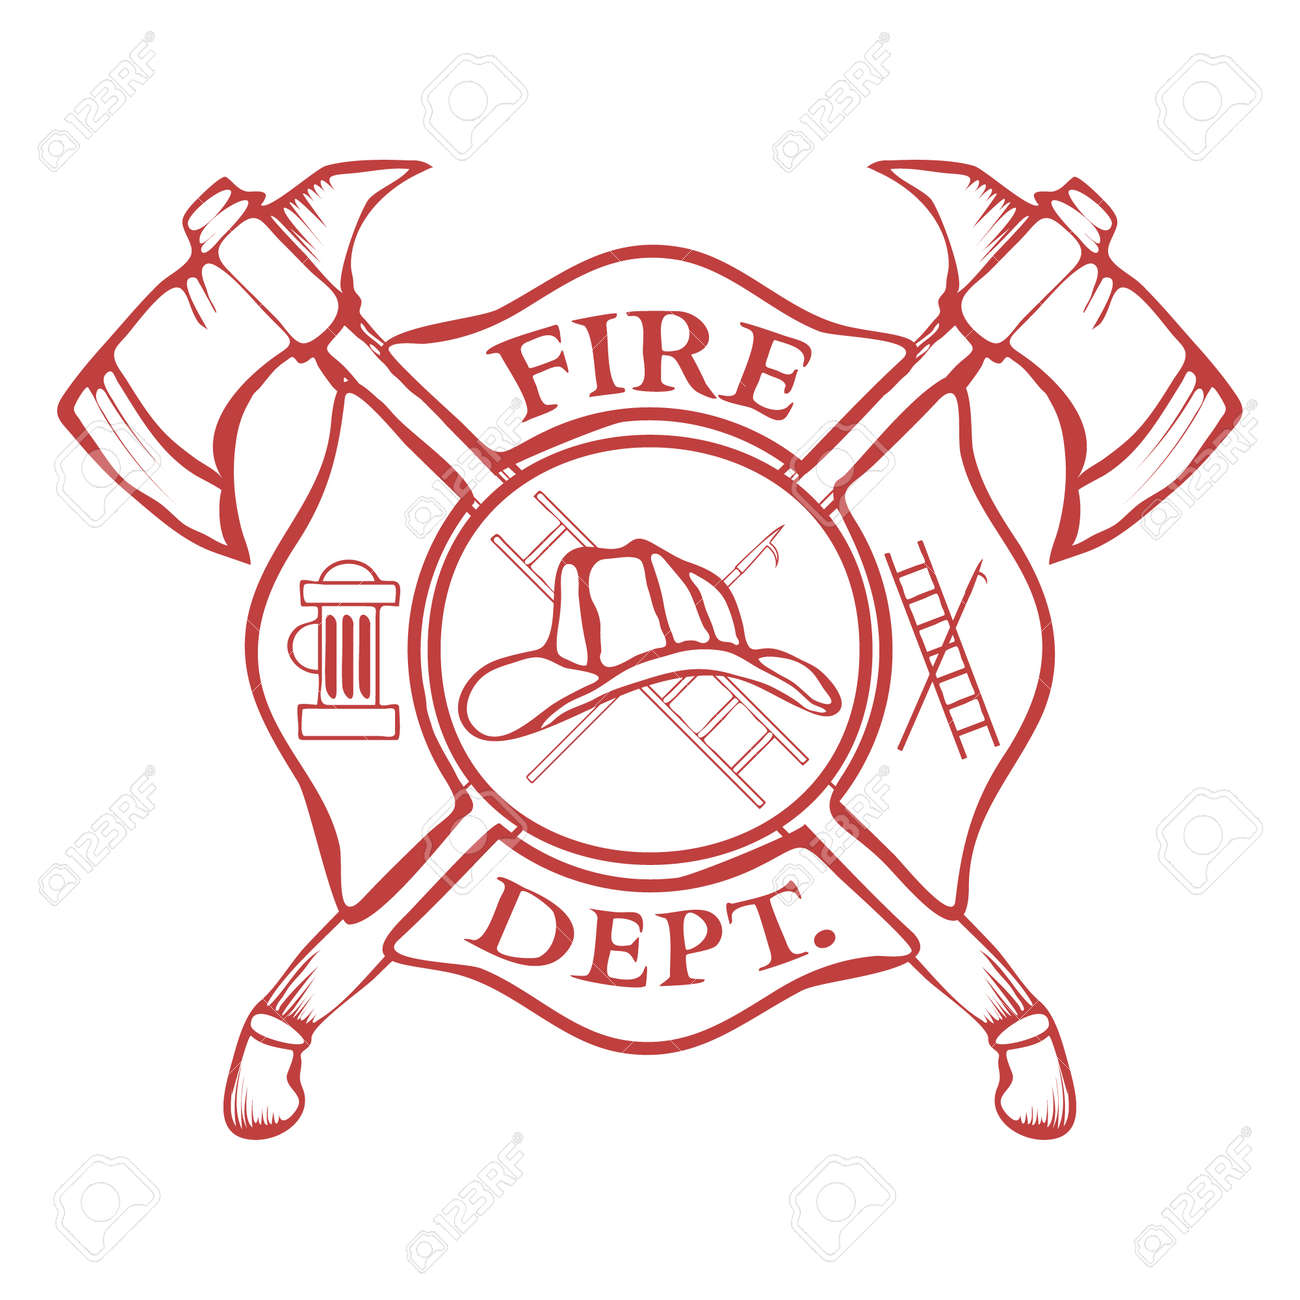 Fire Dept. Label. Helmet with Crossed Axes. Vector Illustration - 42421917